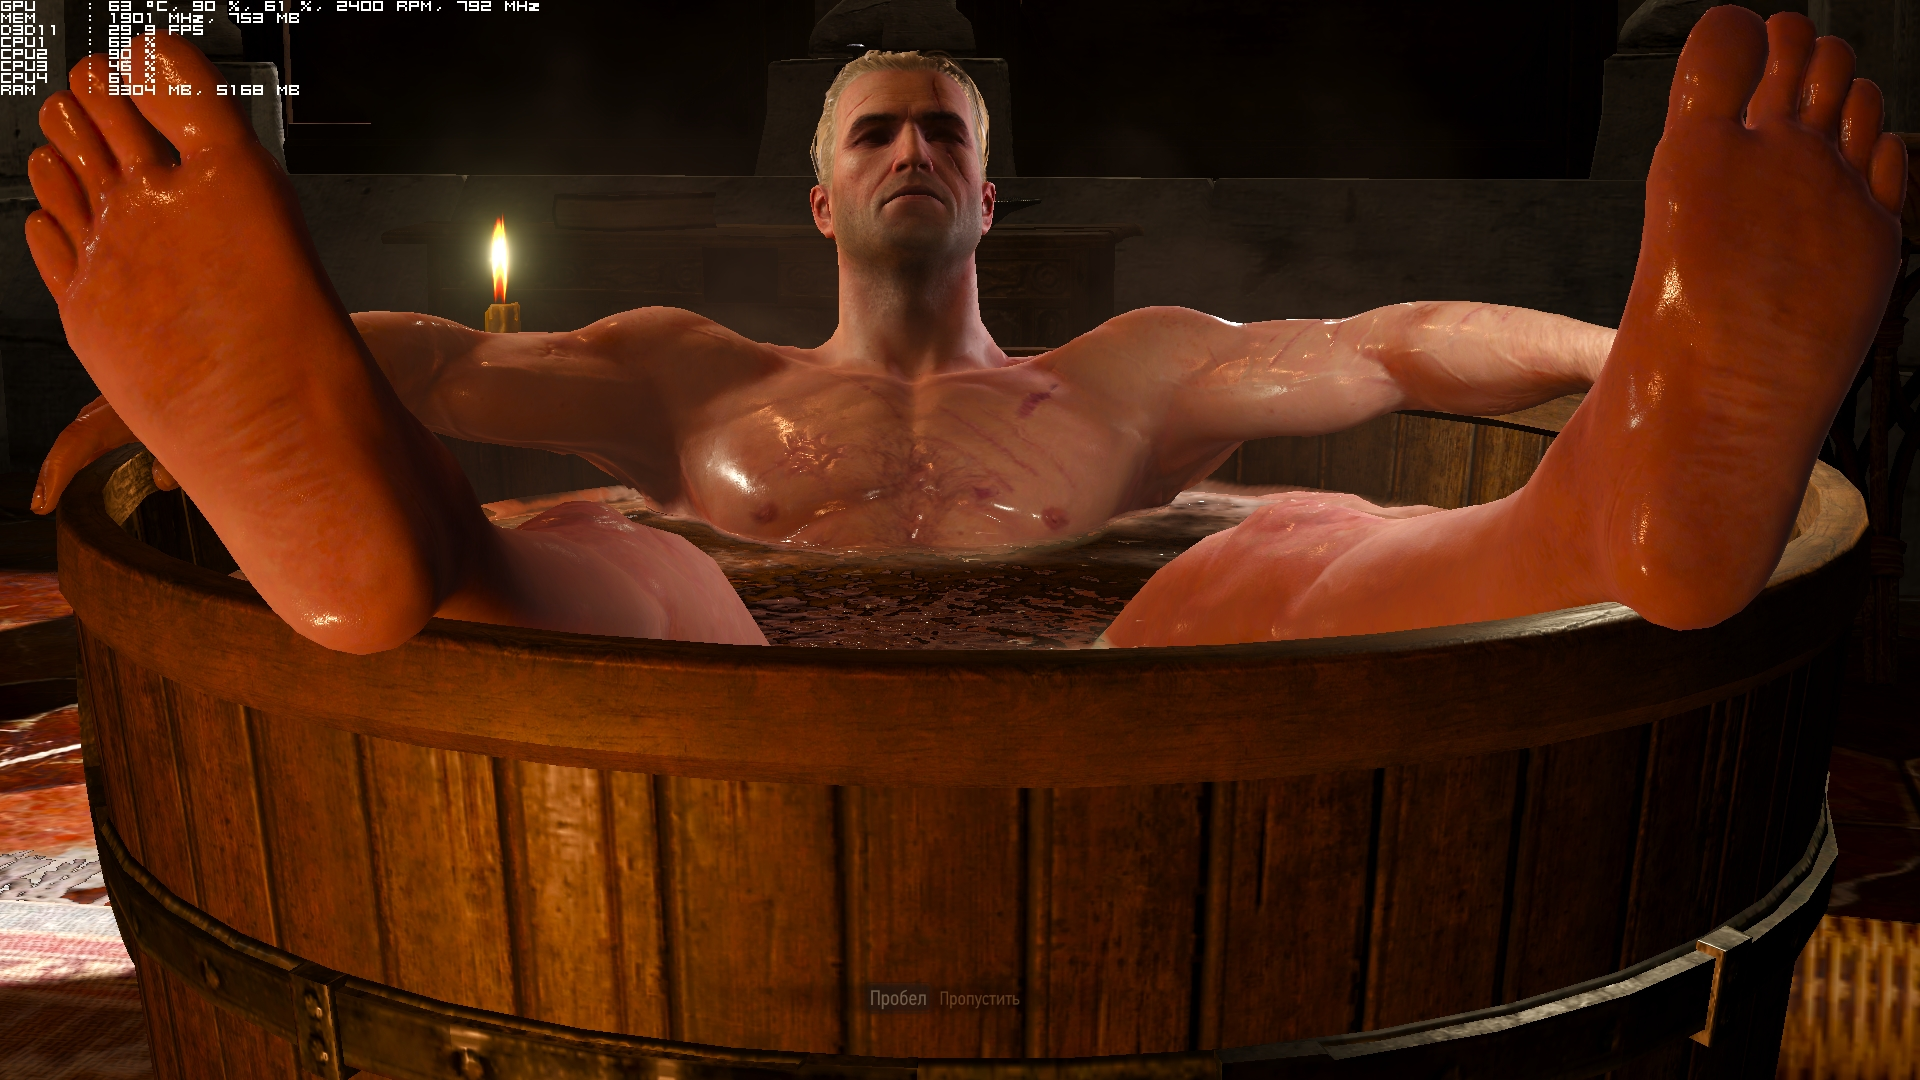 Witcher nude art naked photo